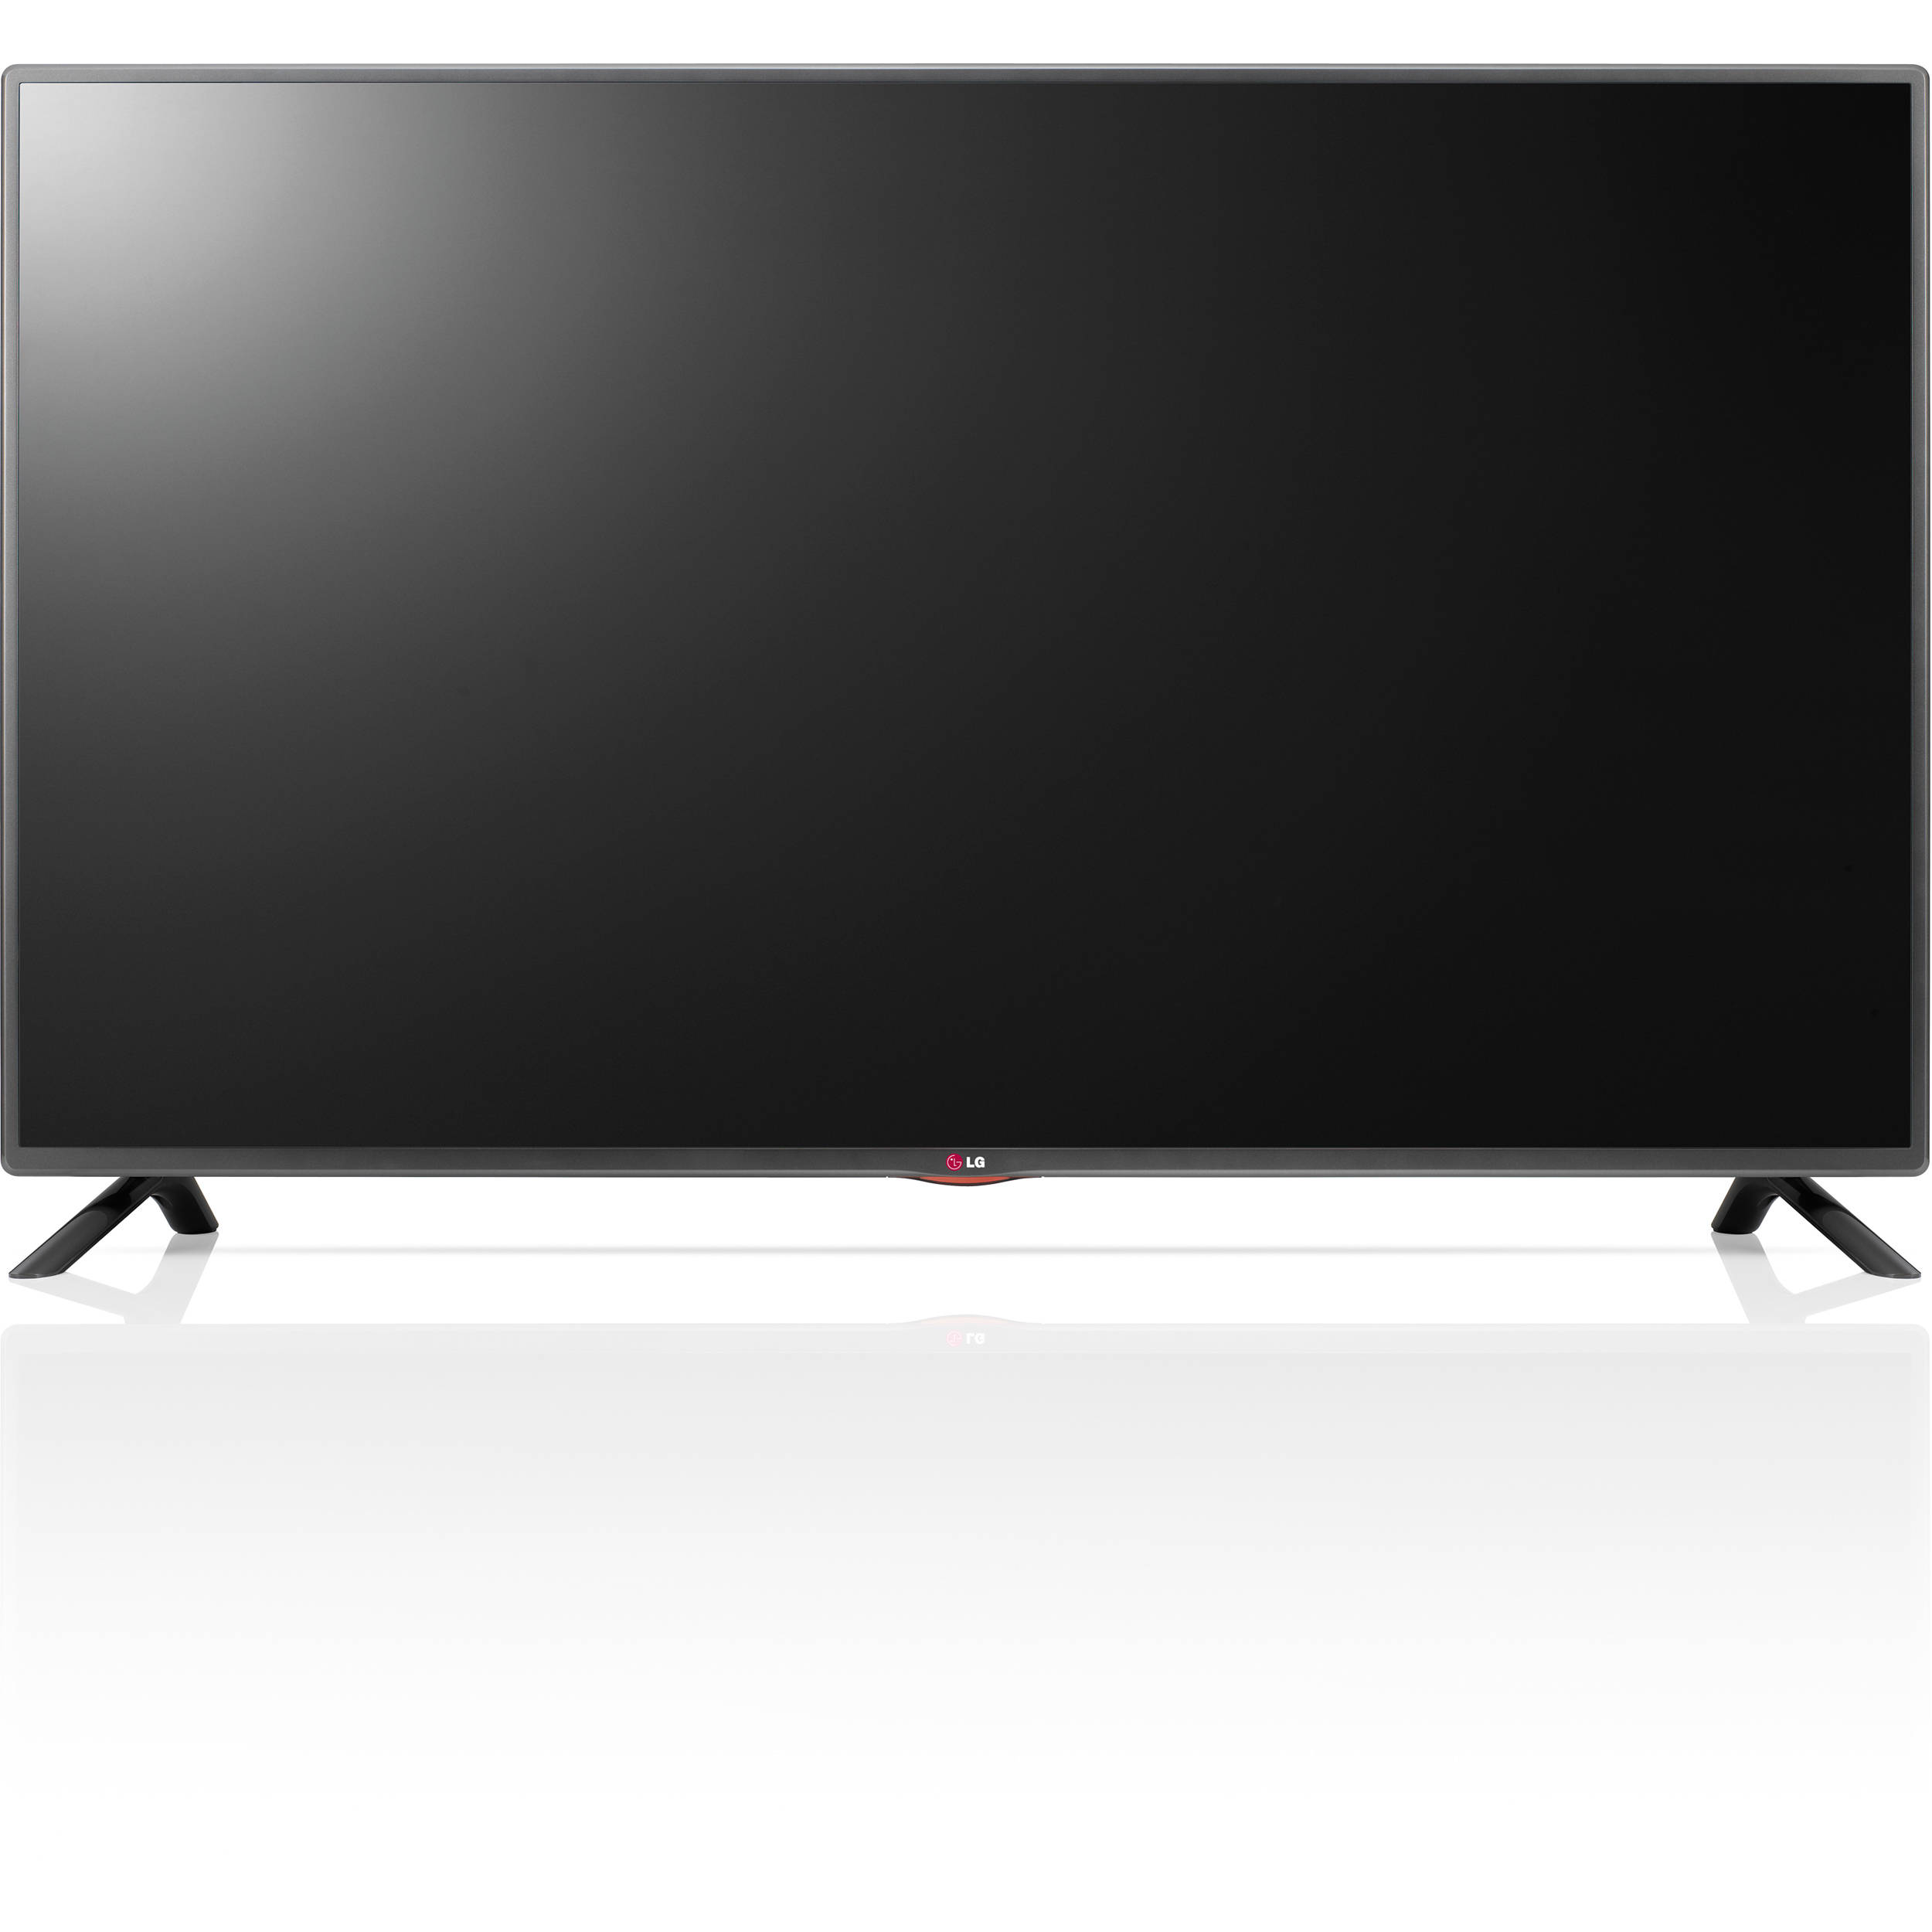 "LG LB5600 Series 32"" Class 1080p LED TV 32LB5600 B&H Photo"